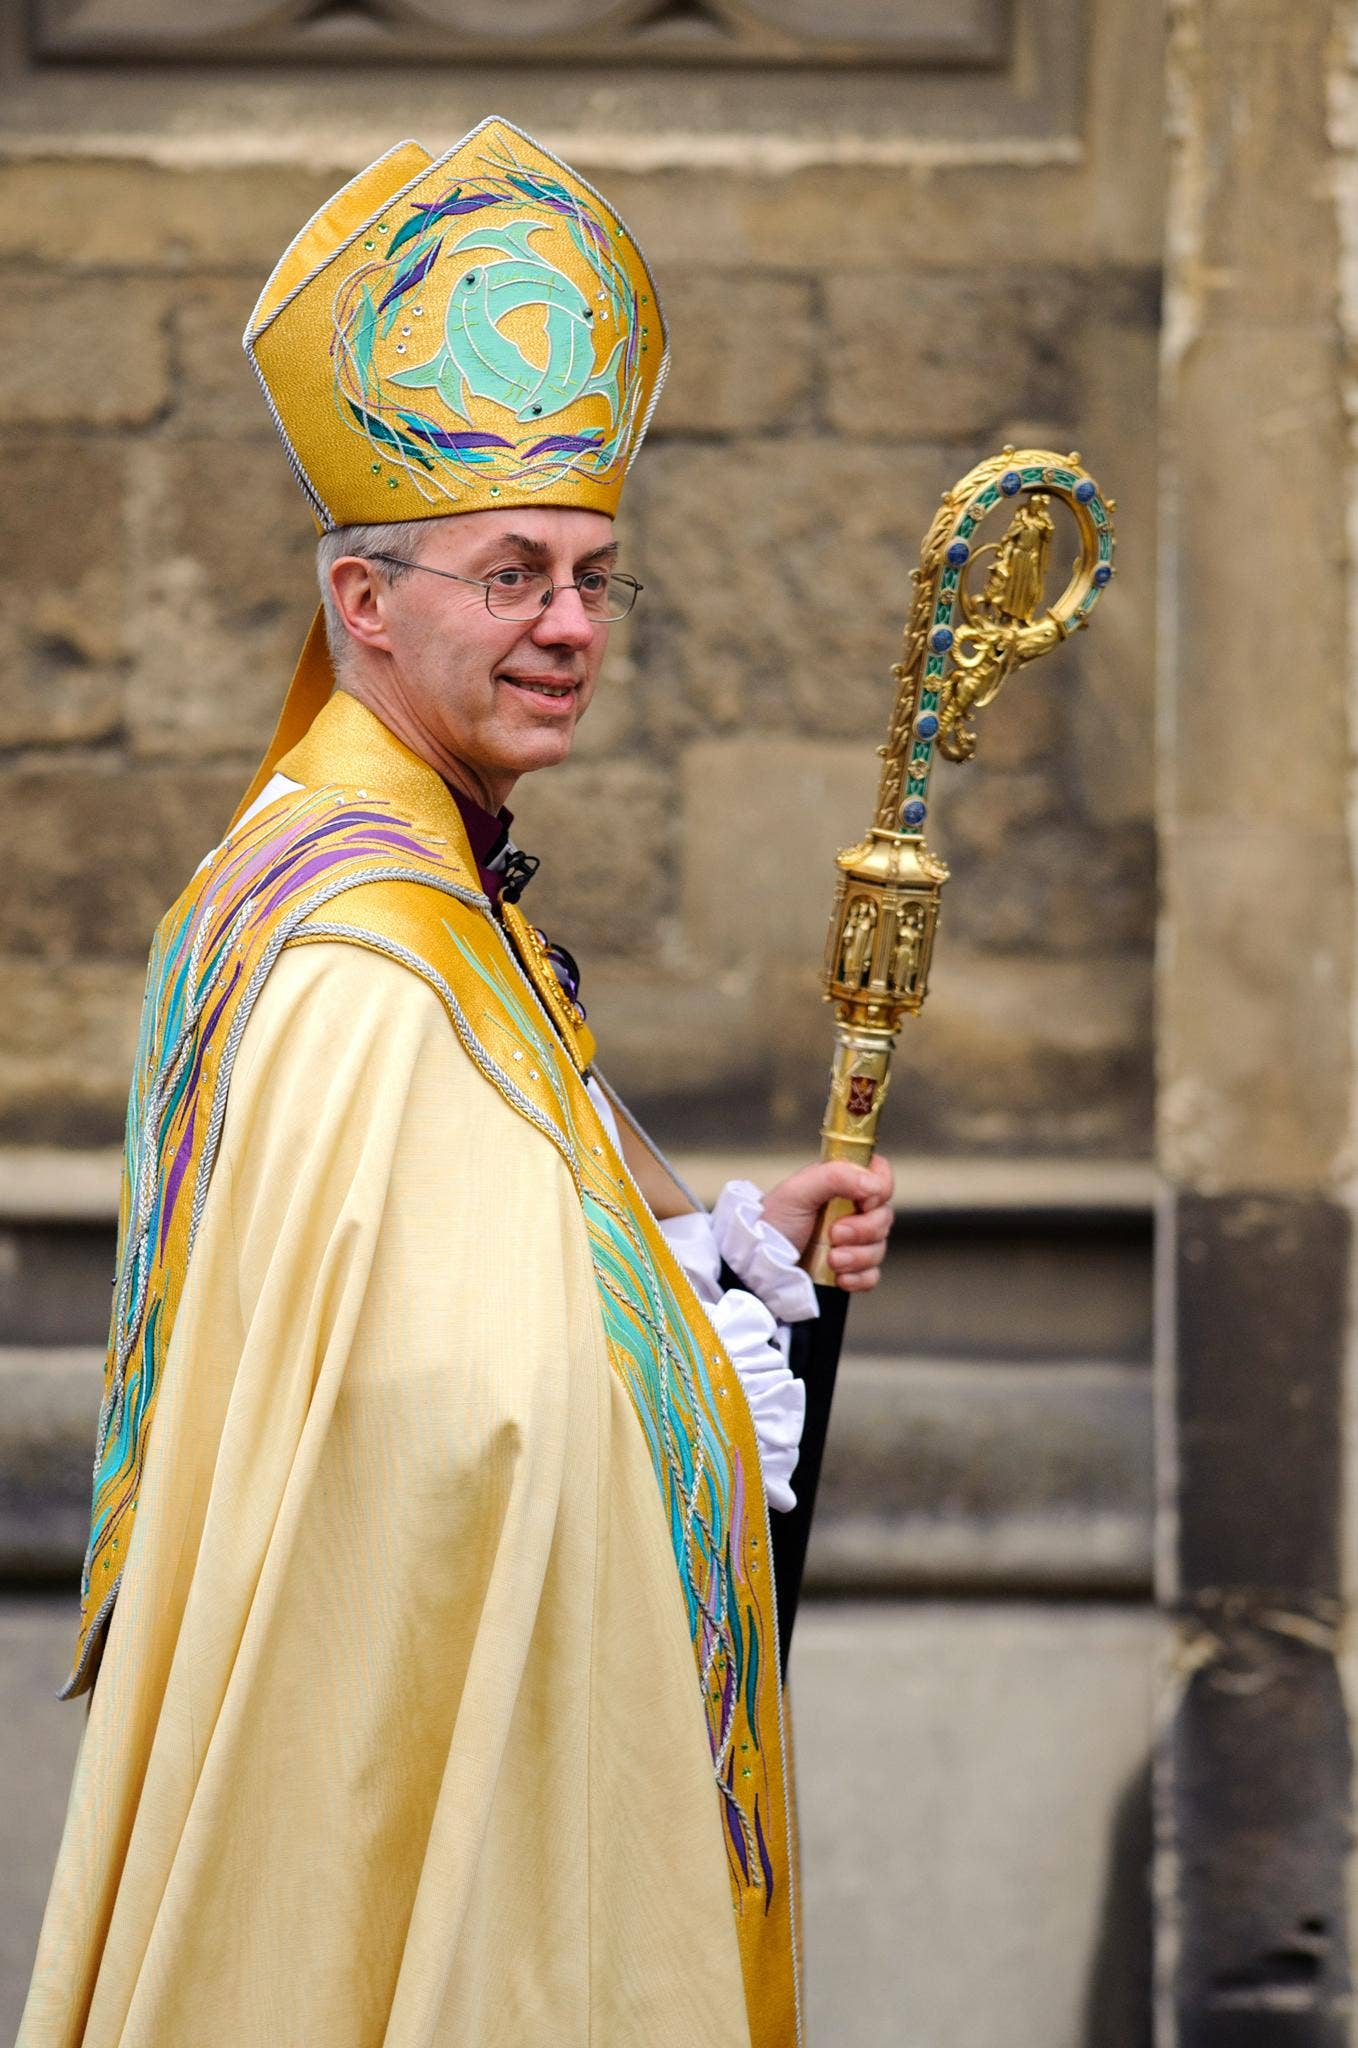 The Lord Is My Shepherd: Archbishop of Canterbury will play The Vicar of Dibley theme tune on Classic FM on Easter Sunday